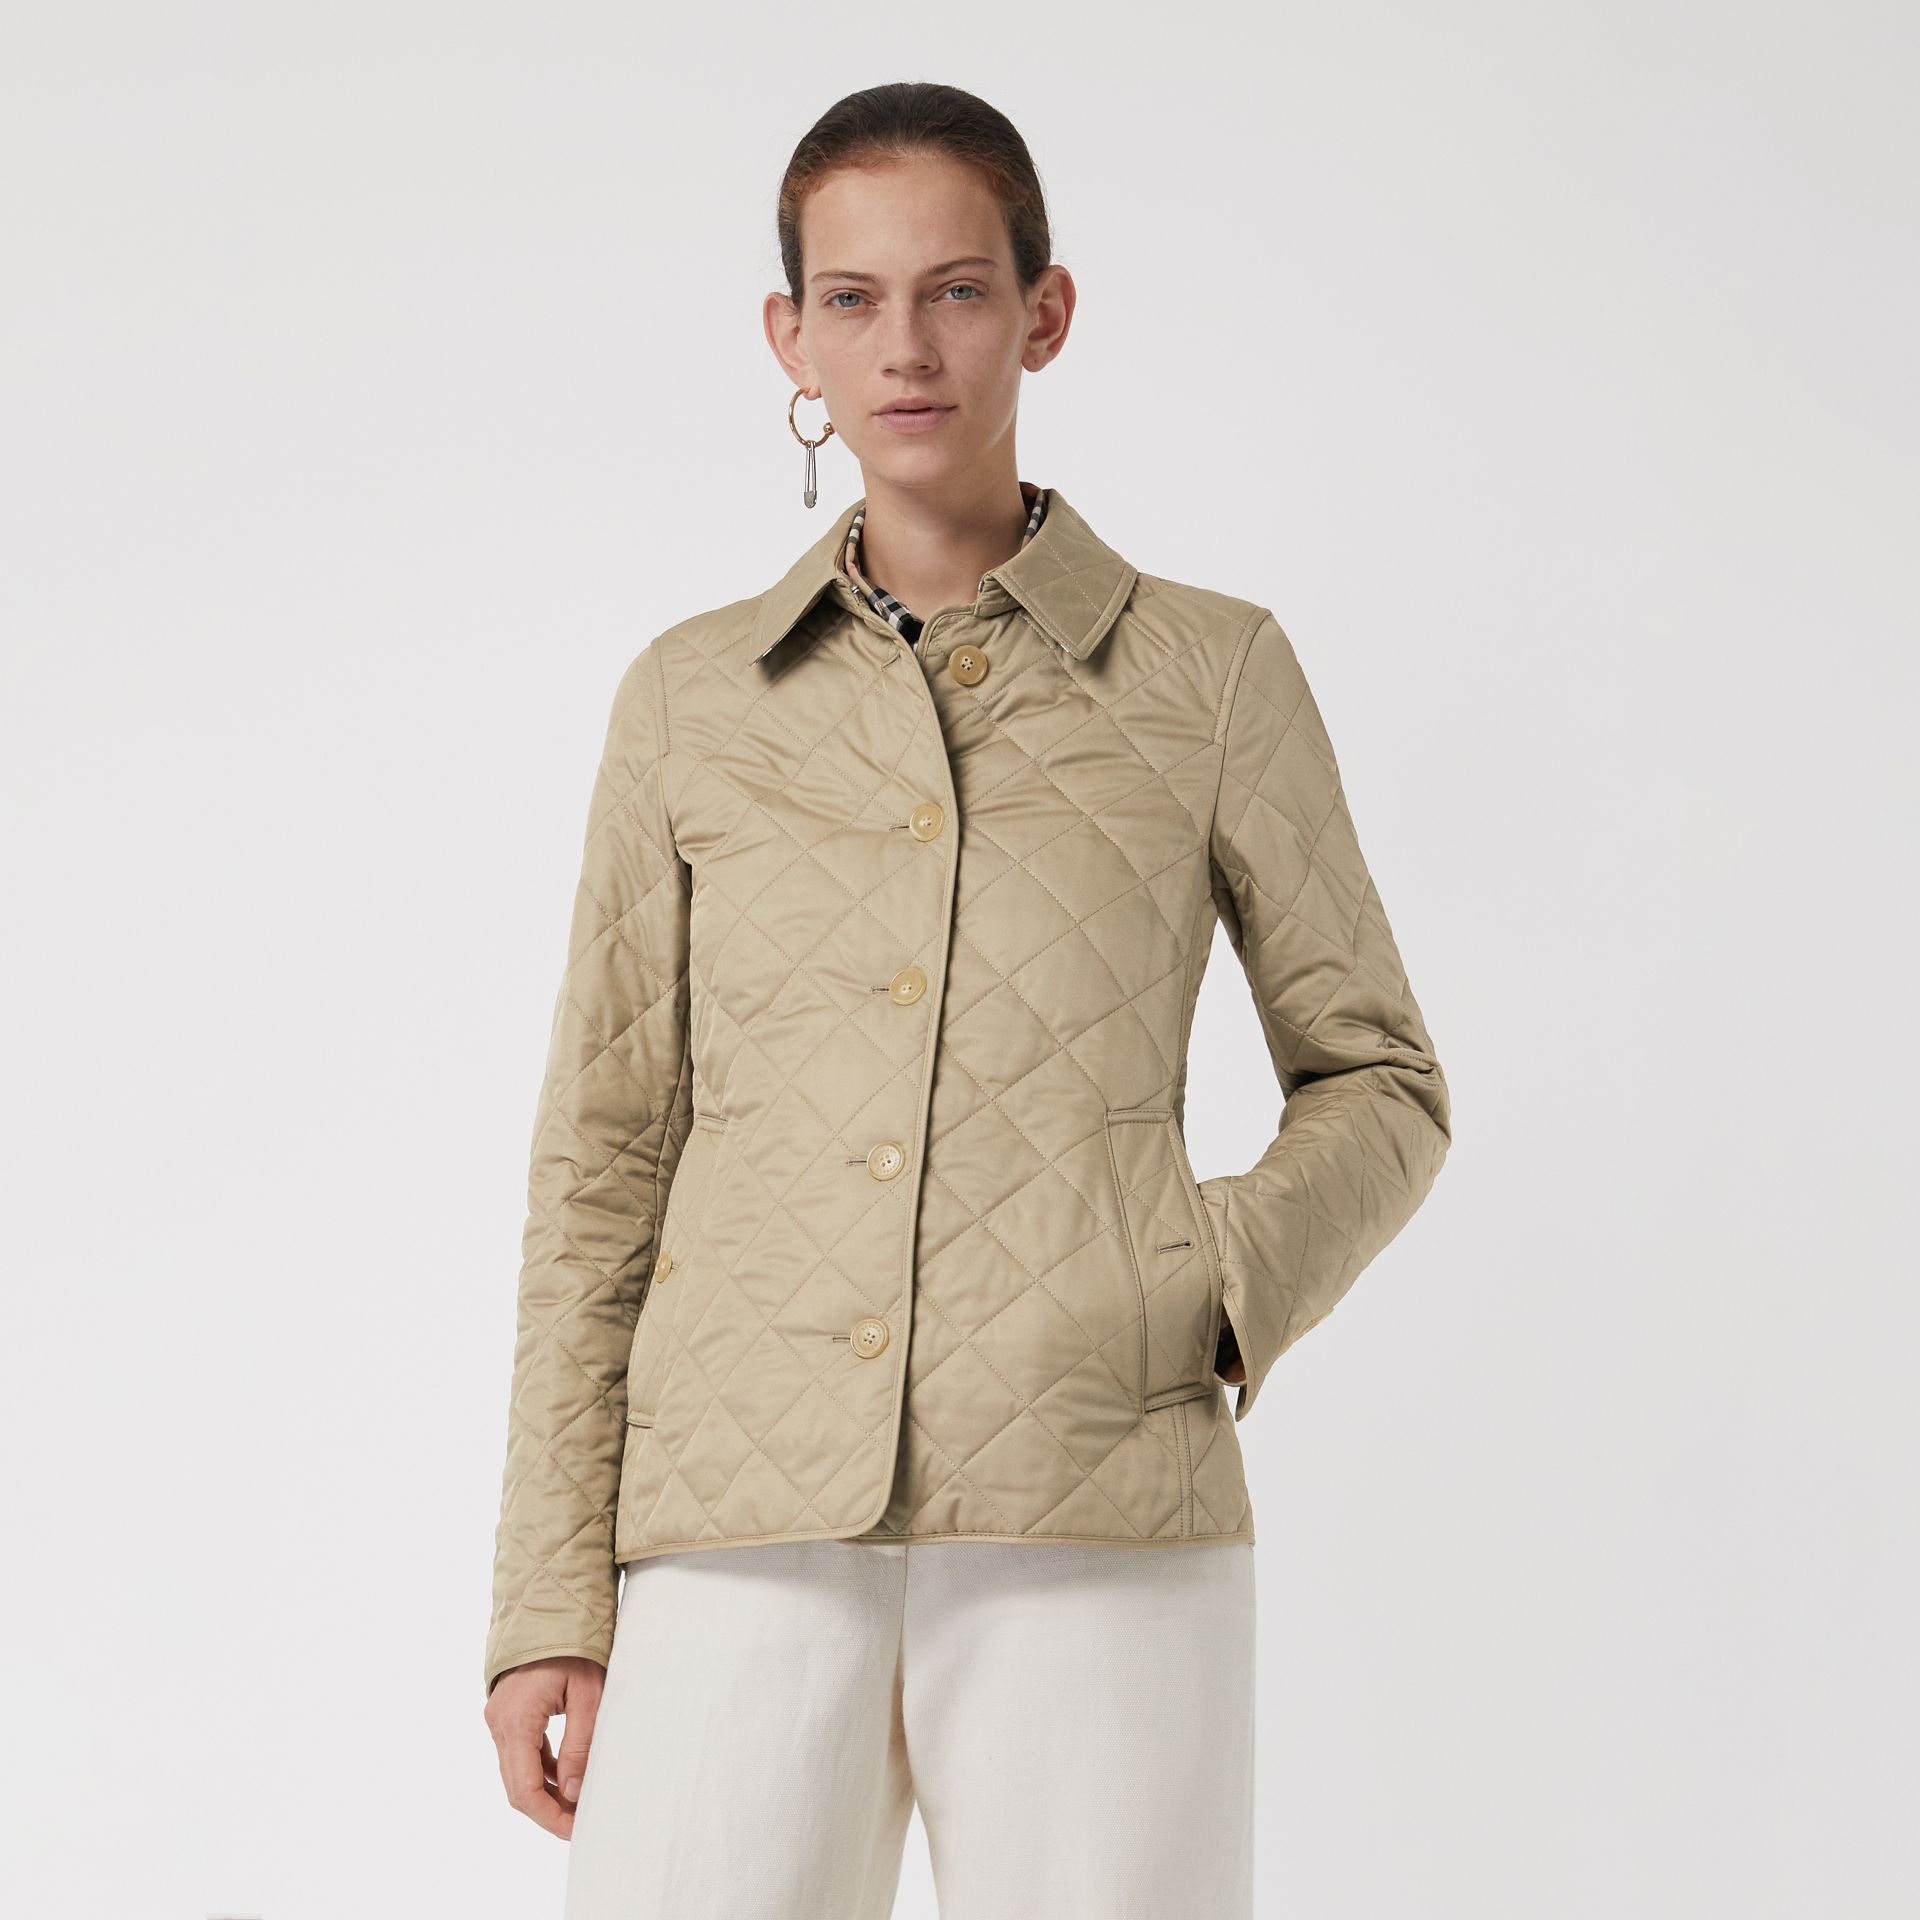 Jacke in Rautensteppung (Canvas) - Damen | Burberry - Galerie-Bild 4